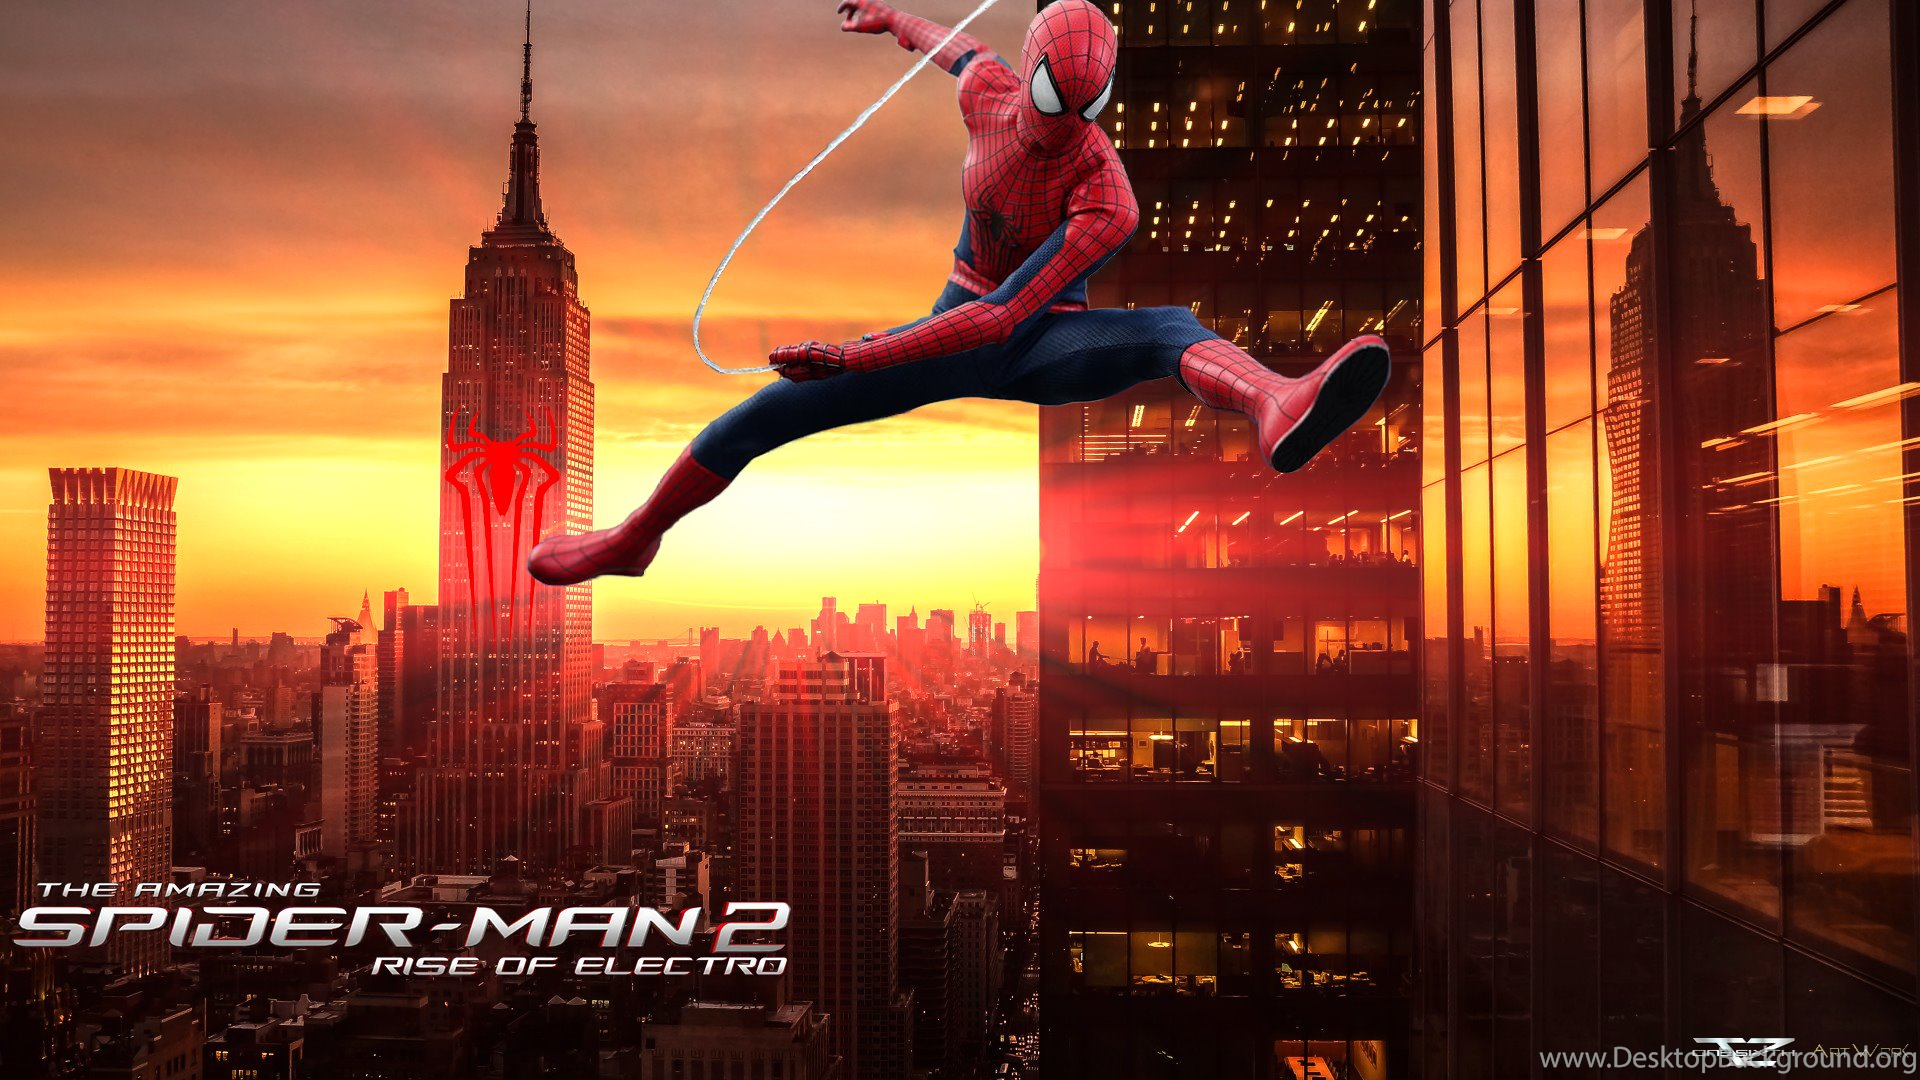 The Amazing Spider Man 2 Hot Toys Full Hd Wallpapers Desktop Background